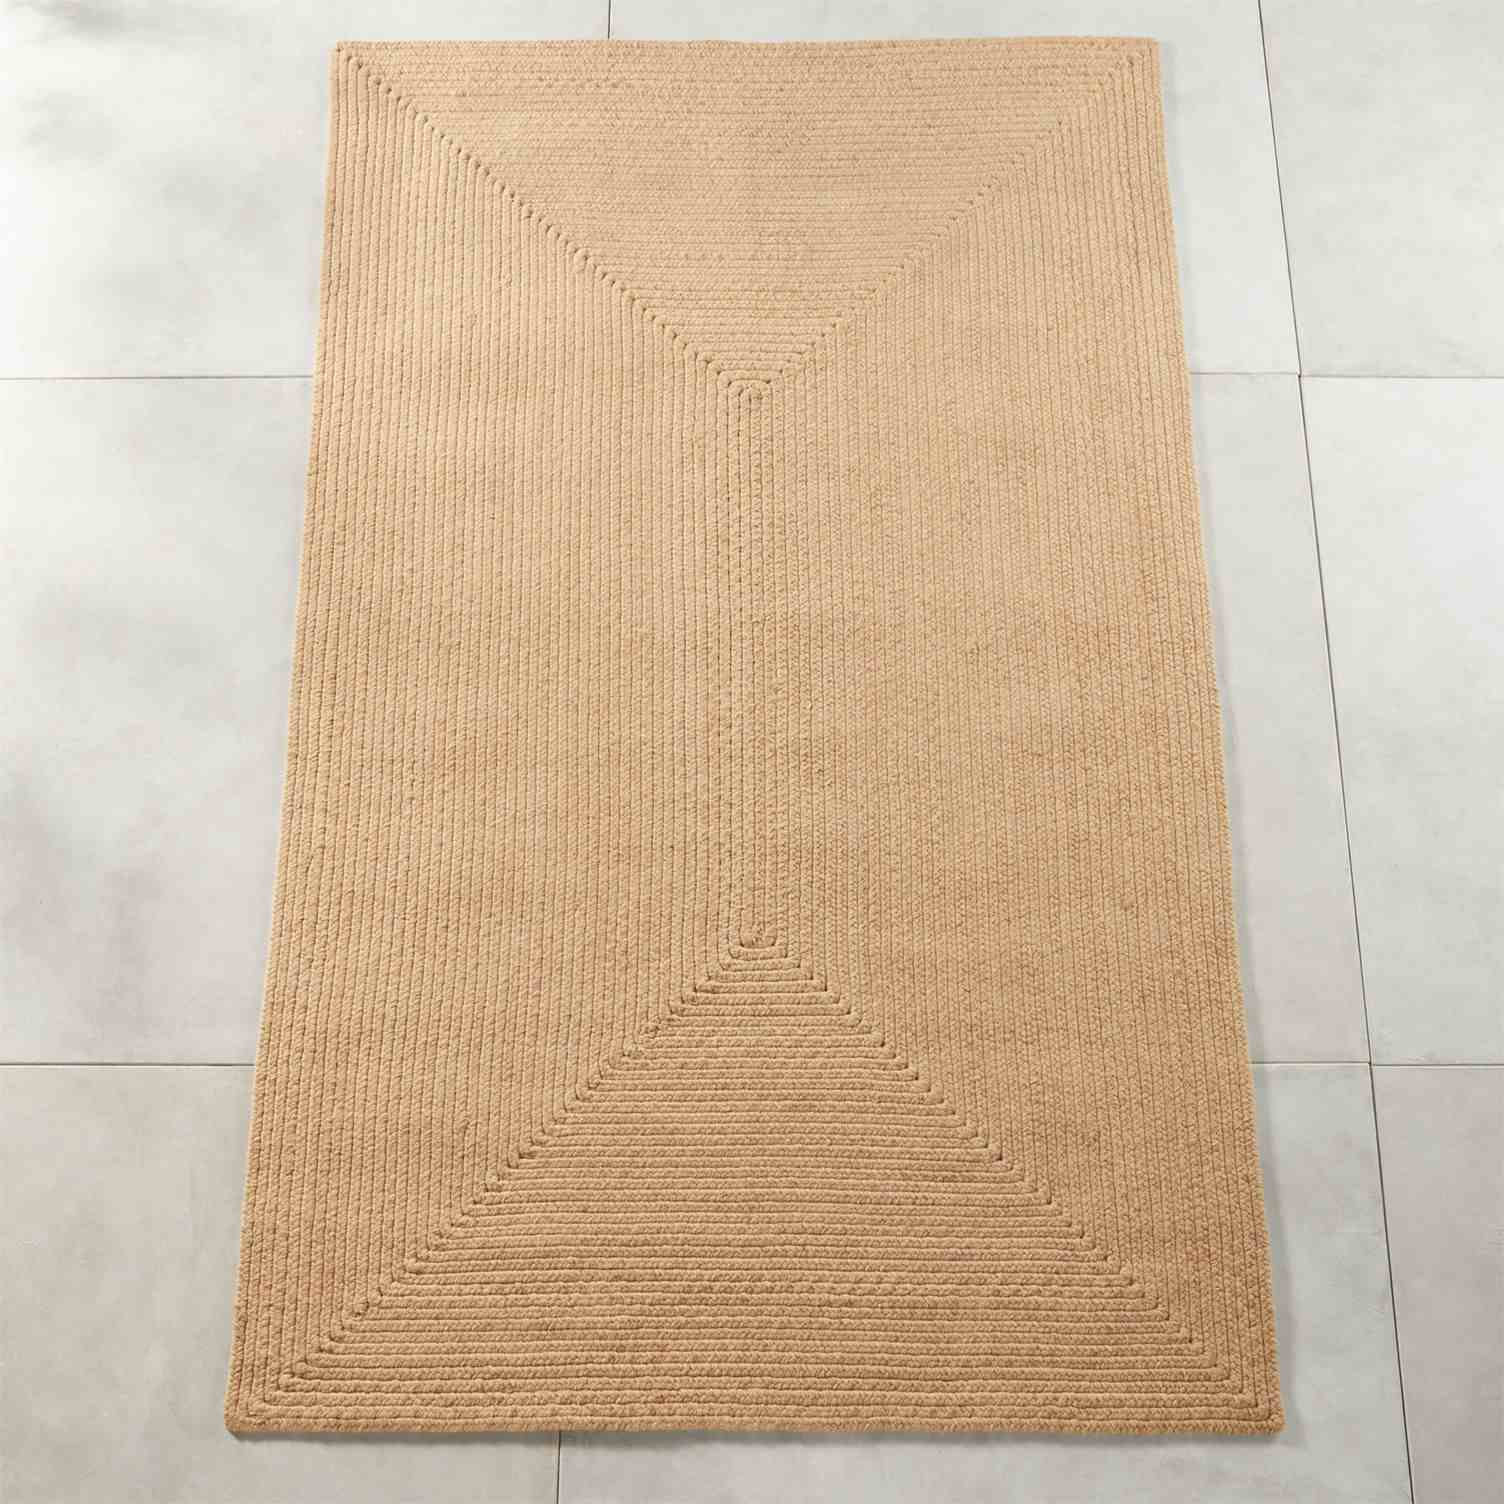 CB2 Borderline Outdoor Rug